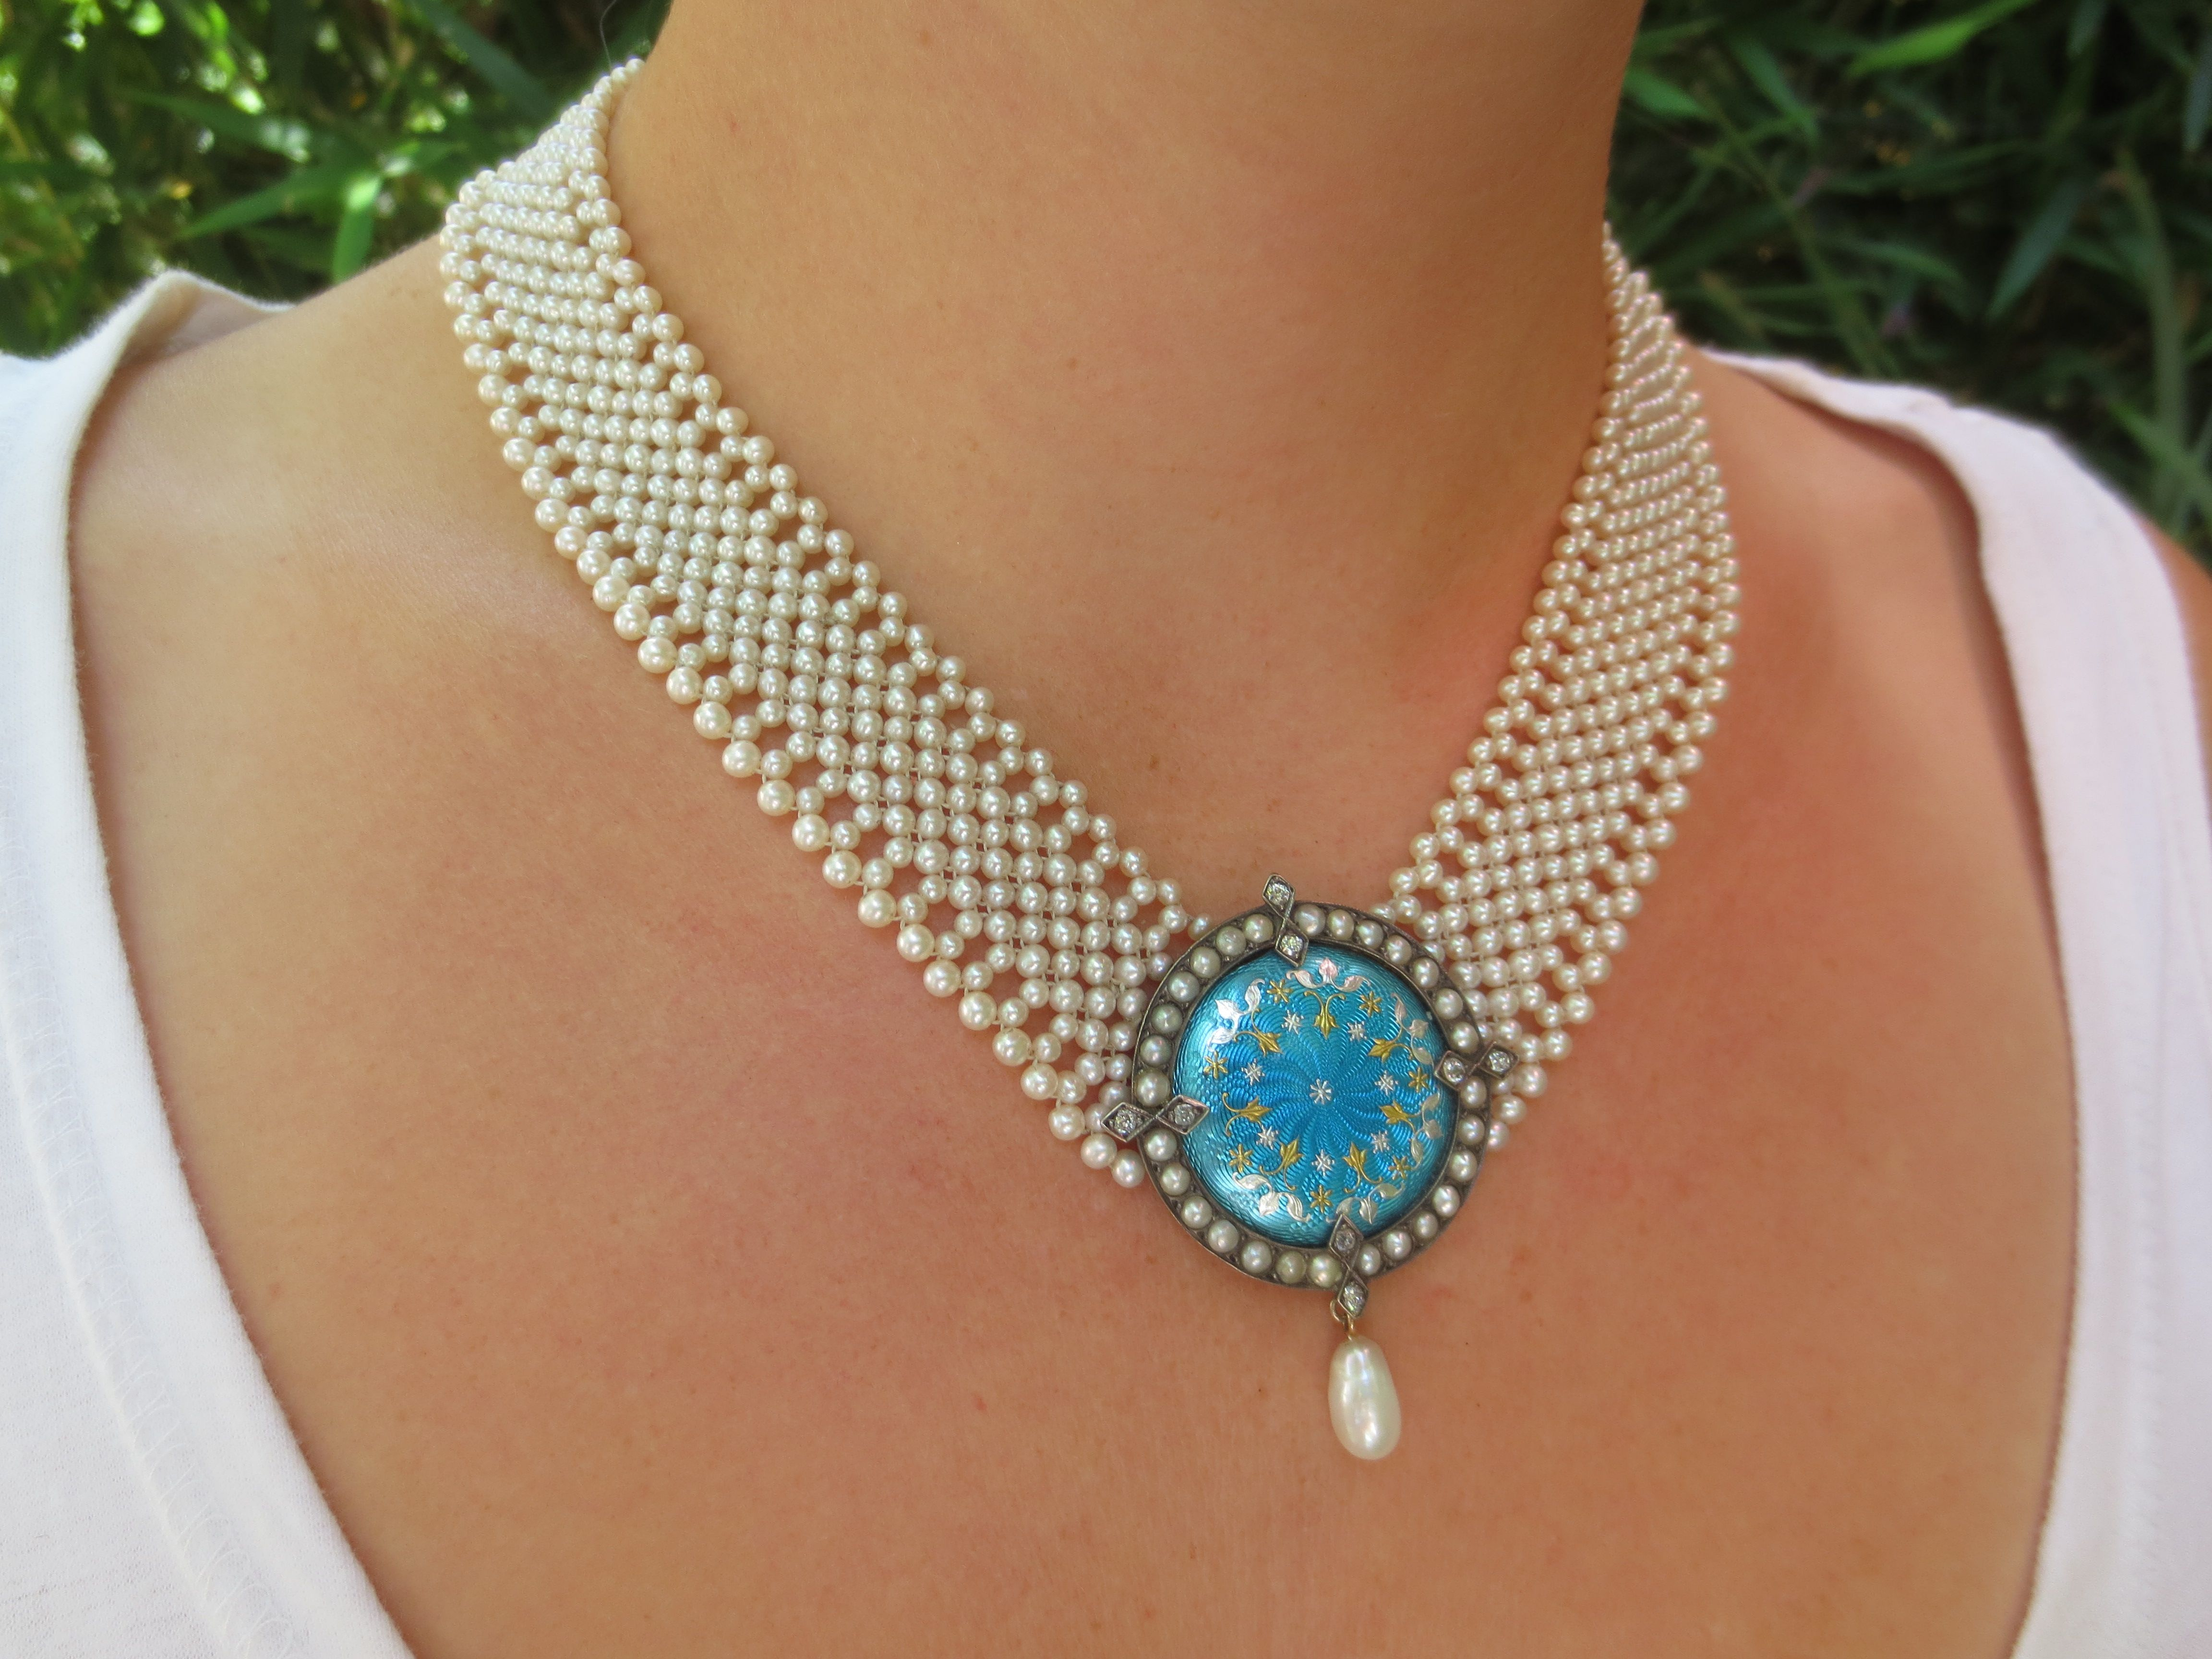 one of a kind woven pearl necklace, by Marina J